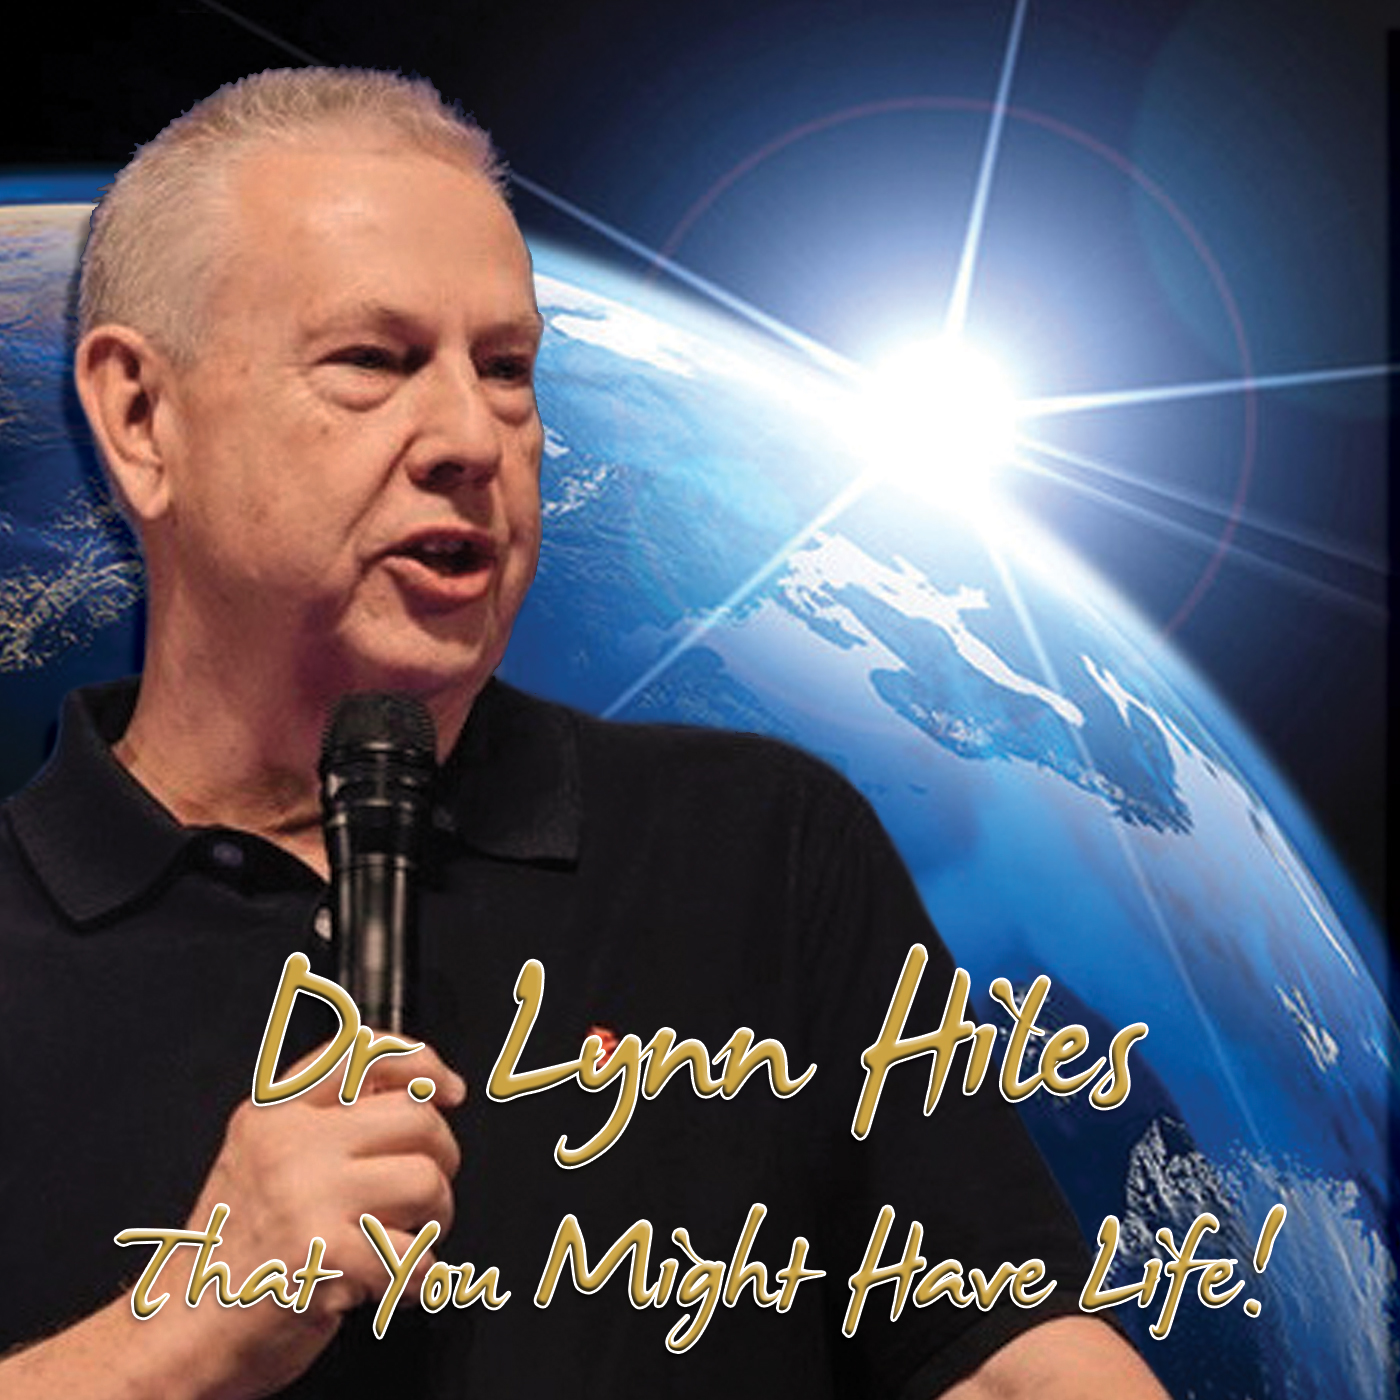 Dr. Lynn Hiles - That You Might Have Life